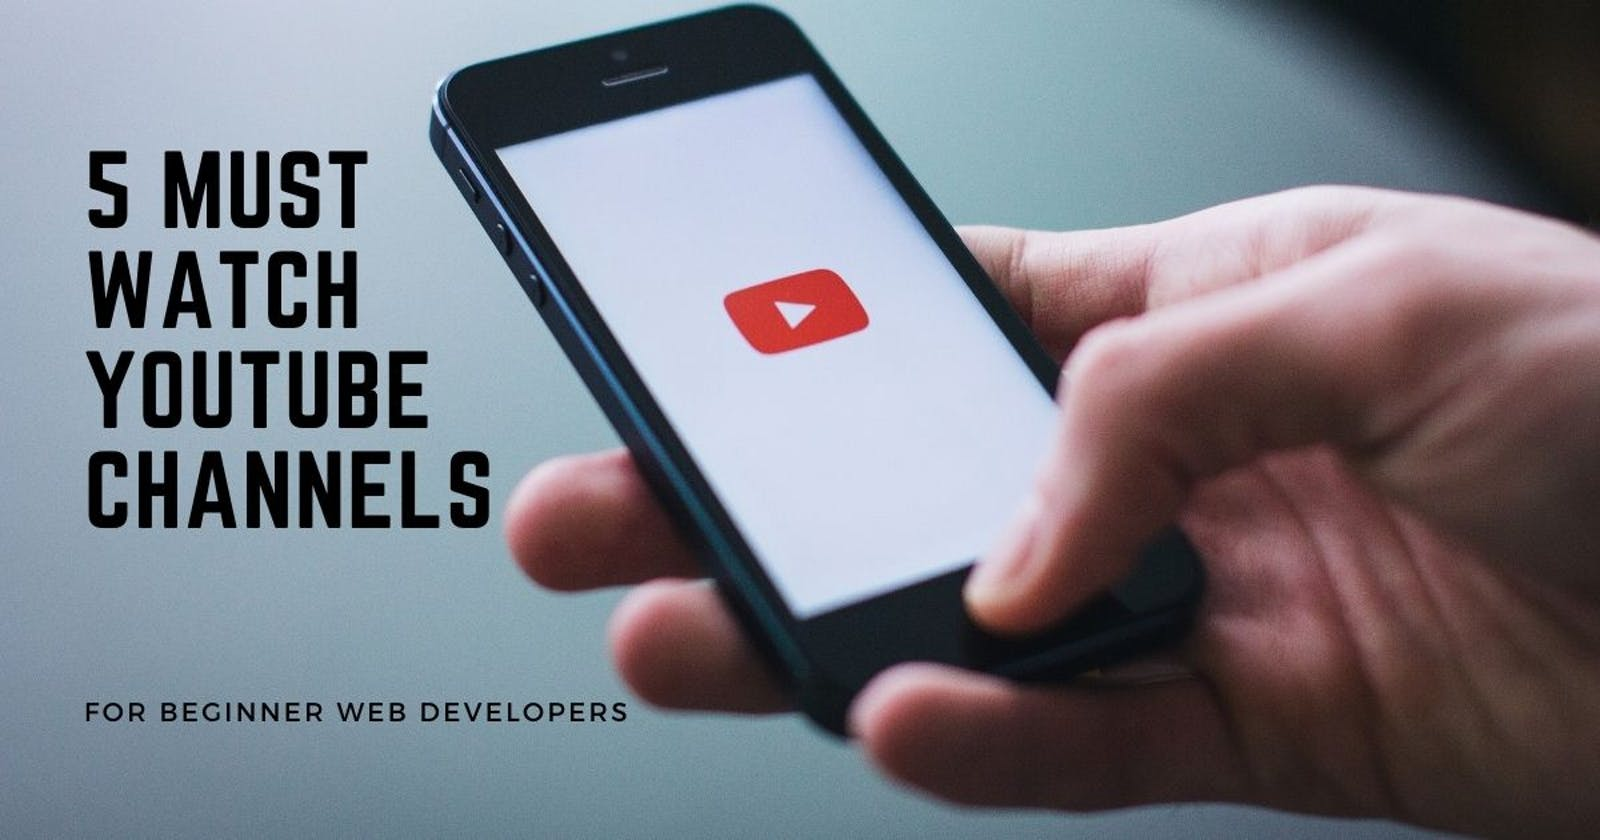 5 must watch YouTube Channels for beginner developers